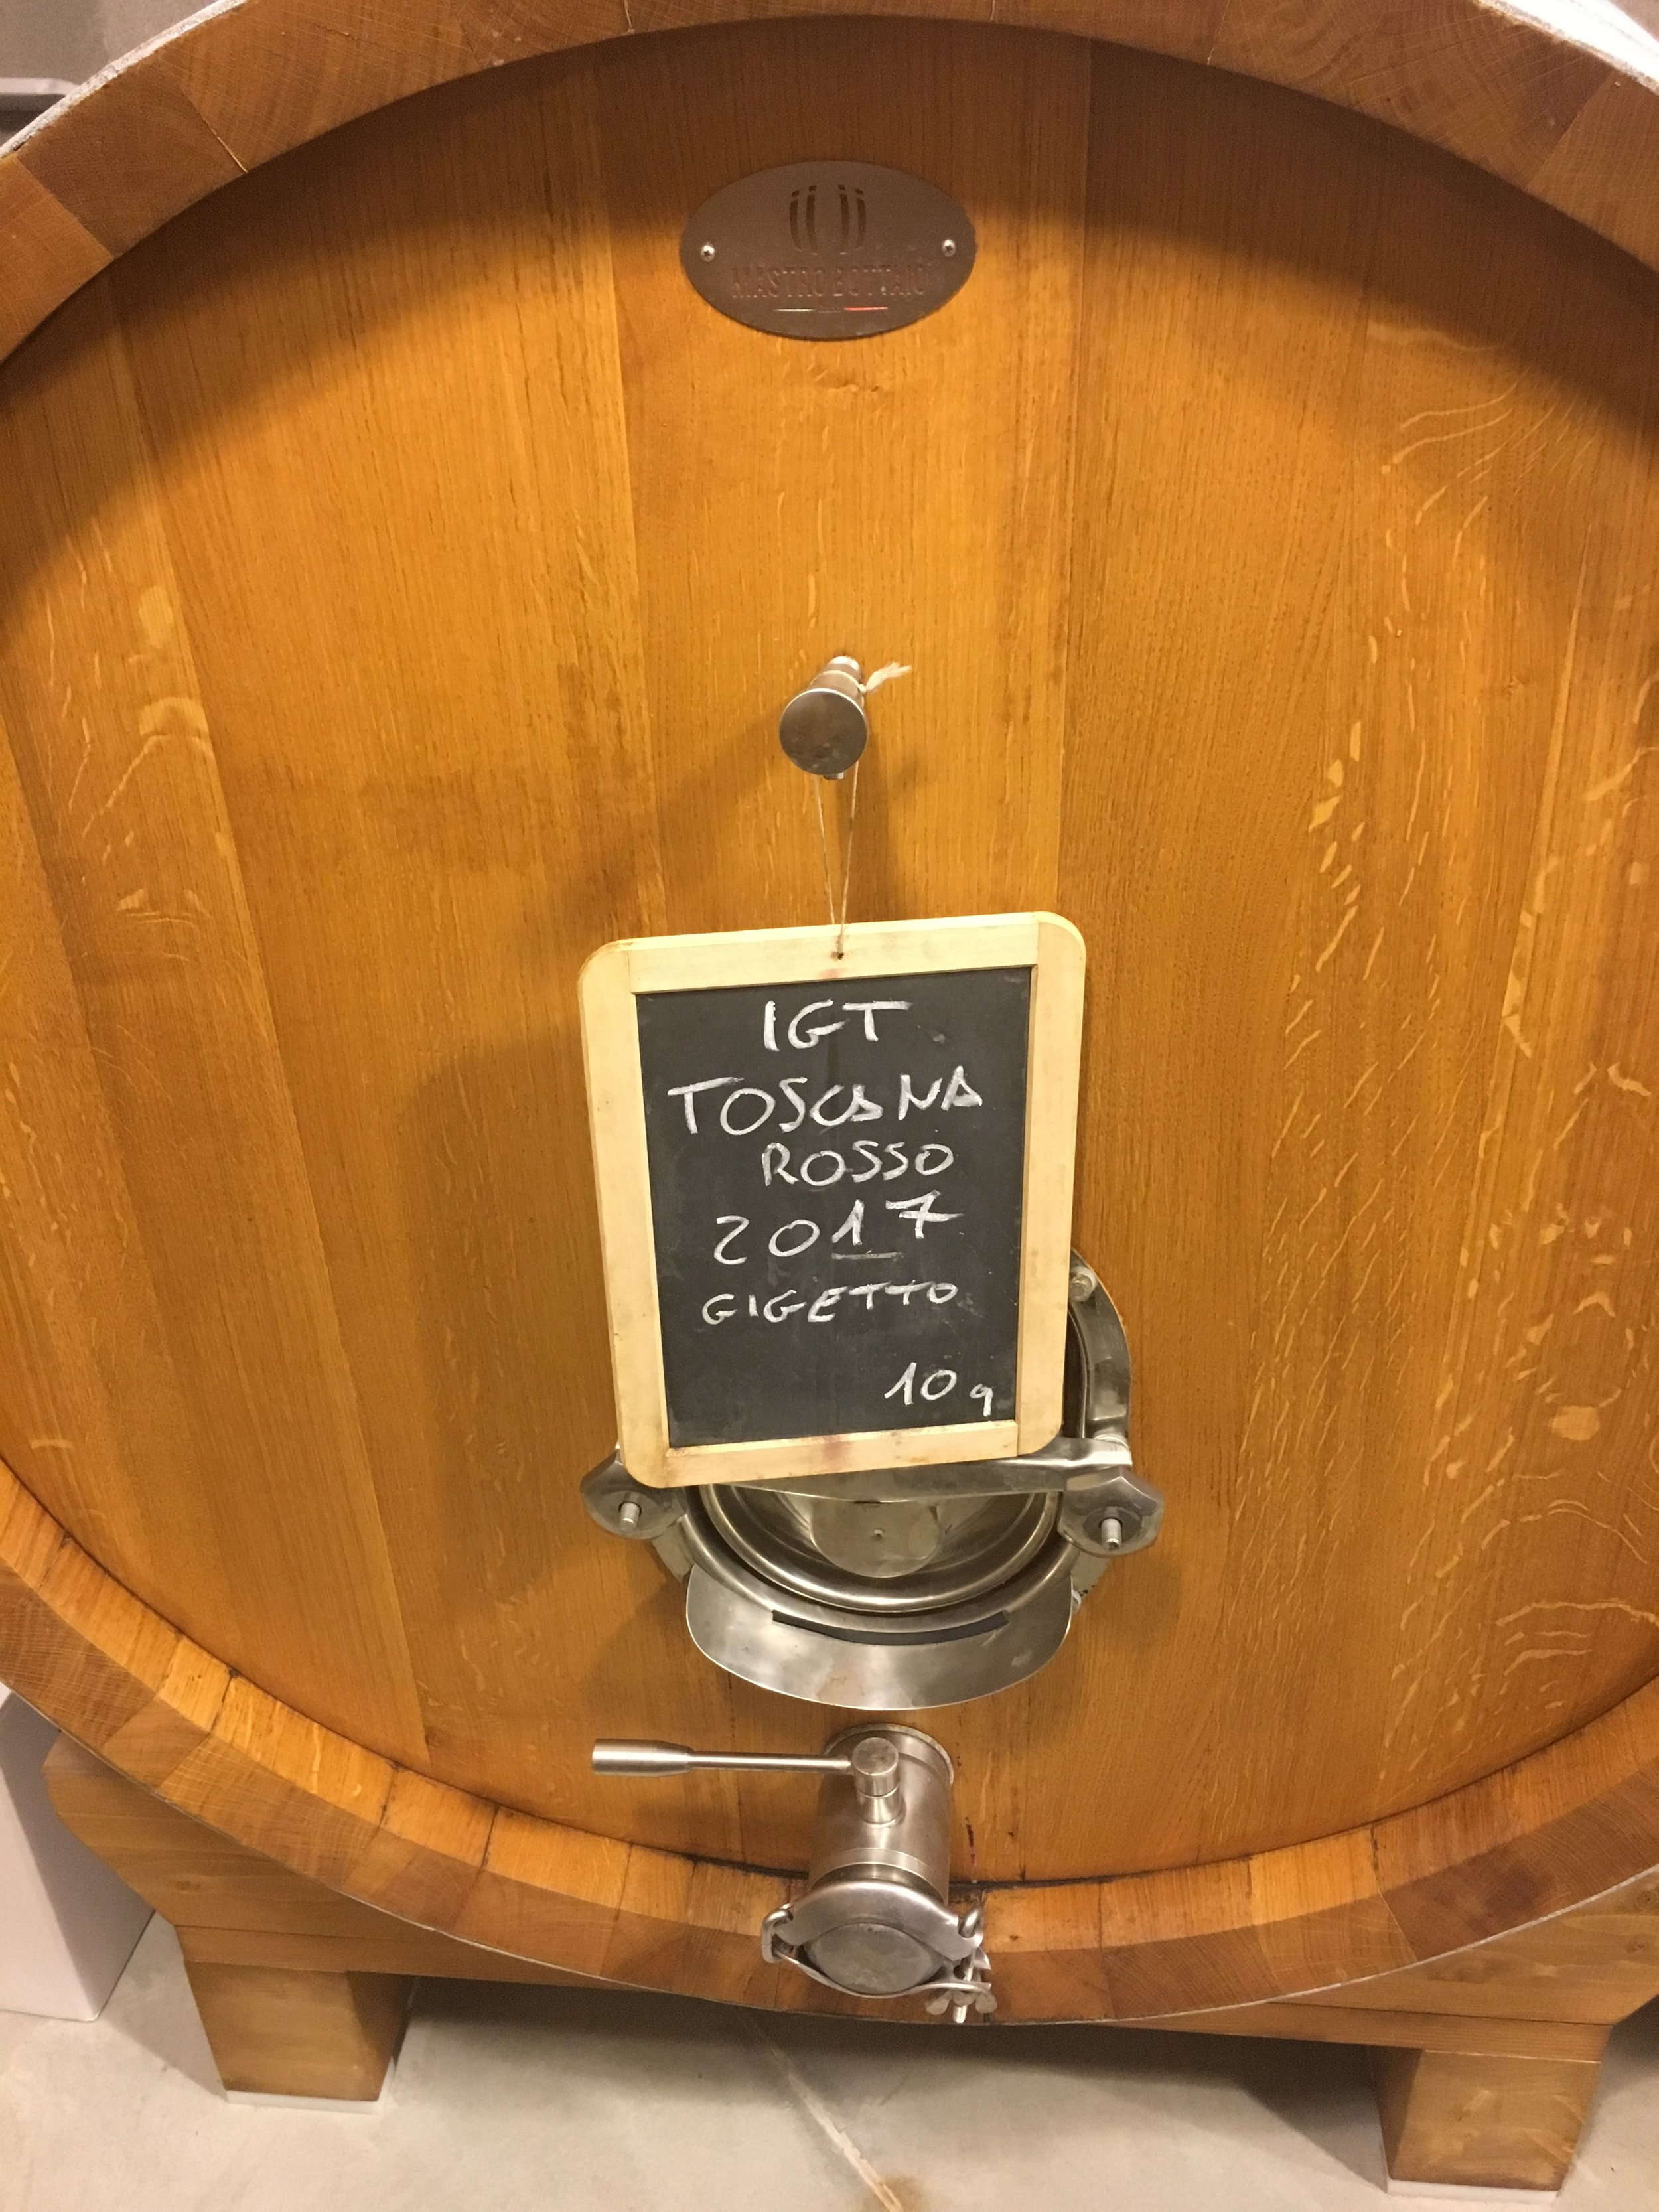 The 2017 of Gigetto still in barrel.